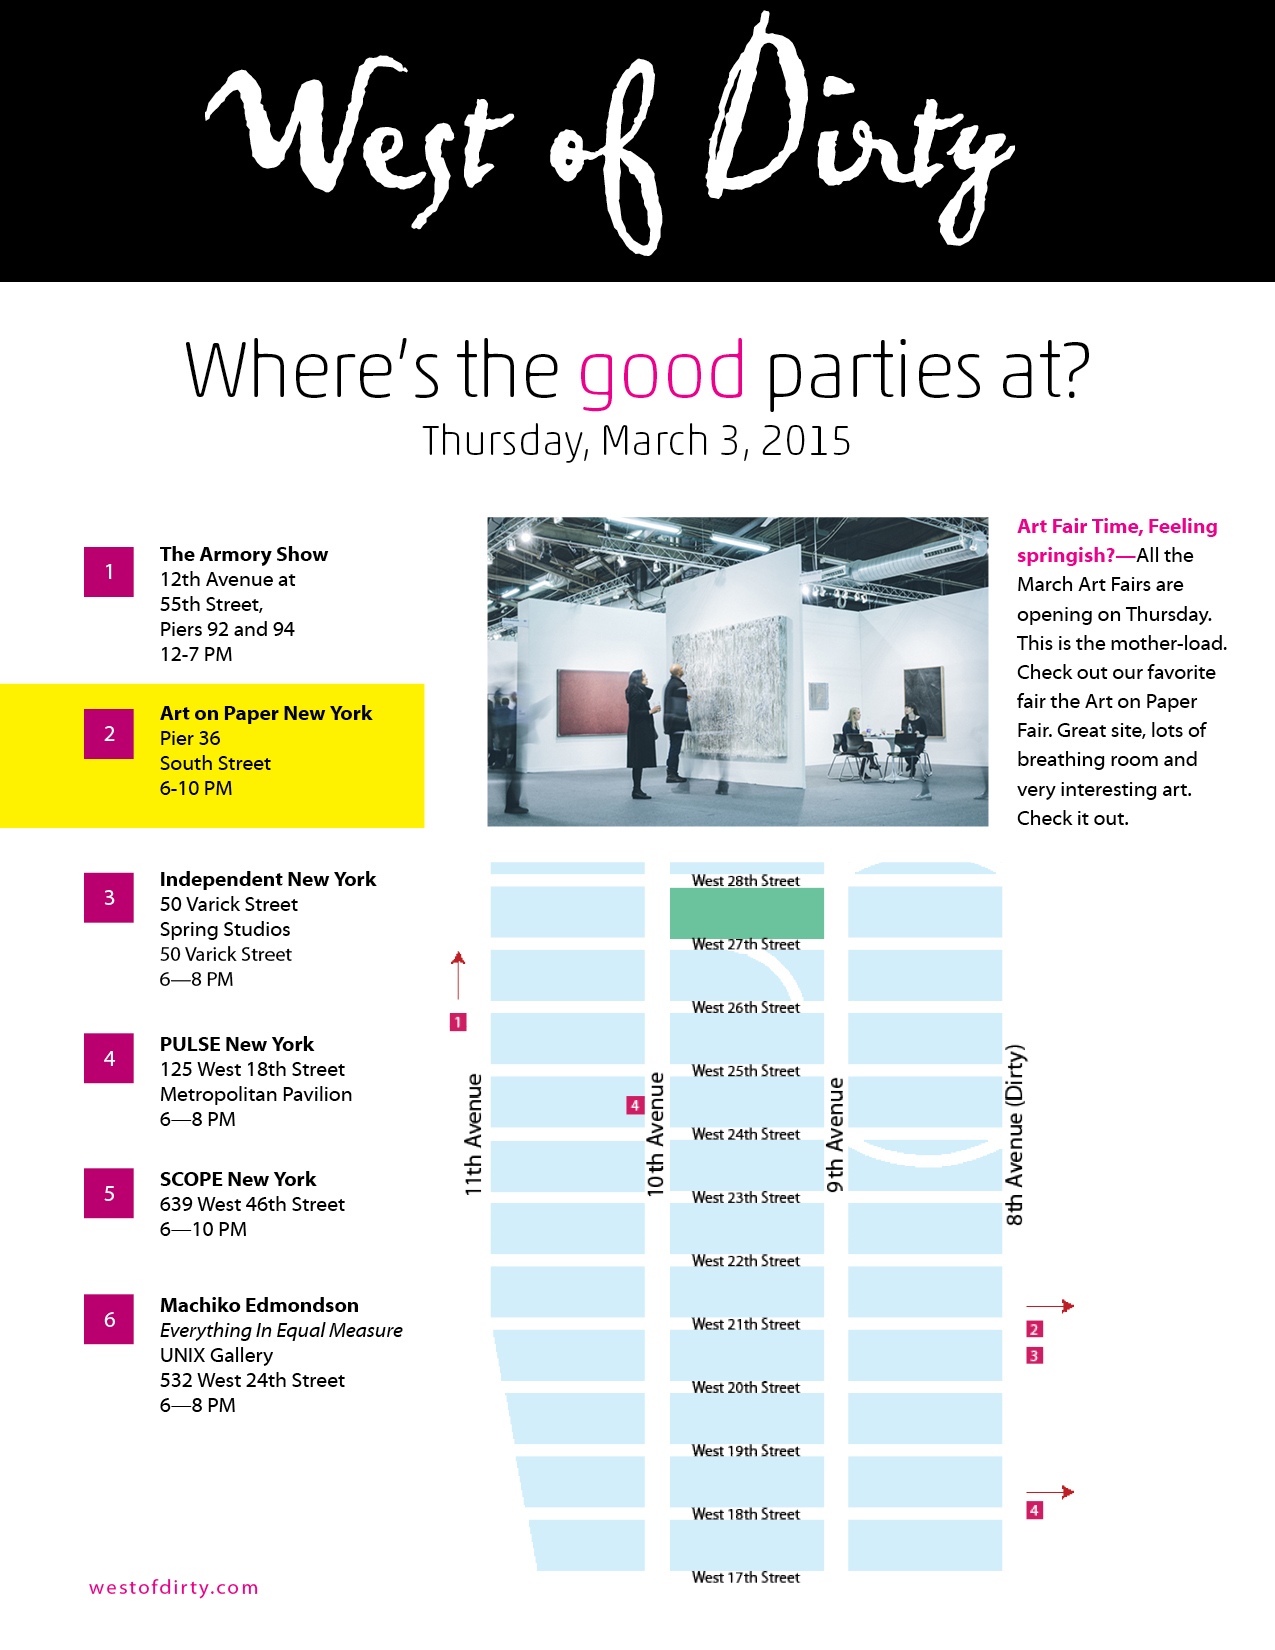 Art Fair Time, Feeling springish? —All the March Art Fairs are opening on Thursday. This is the mother-load. Check out our favorite fair the Art on Paper Fair. Great site, lots of breathing room and very interesting art. Check it out.